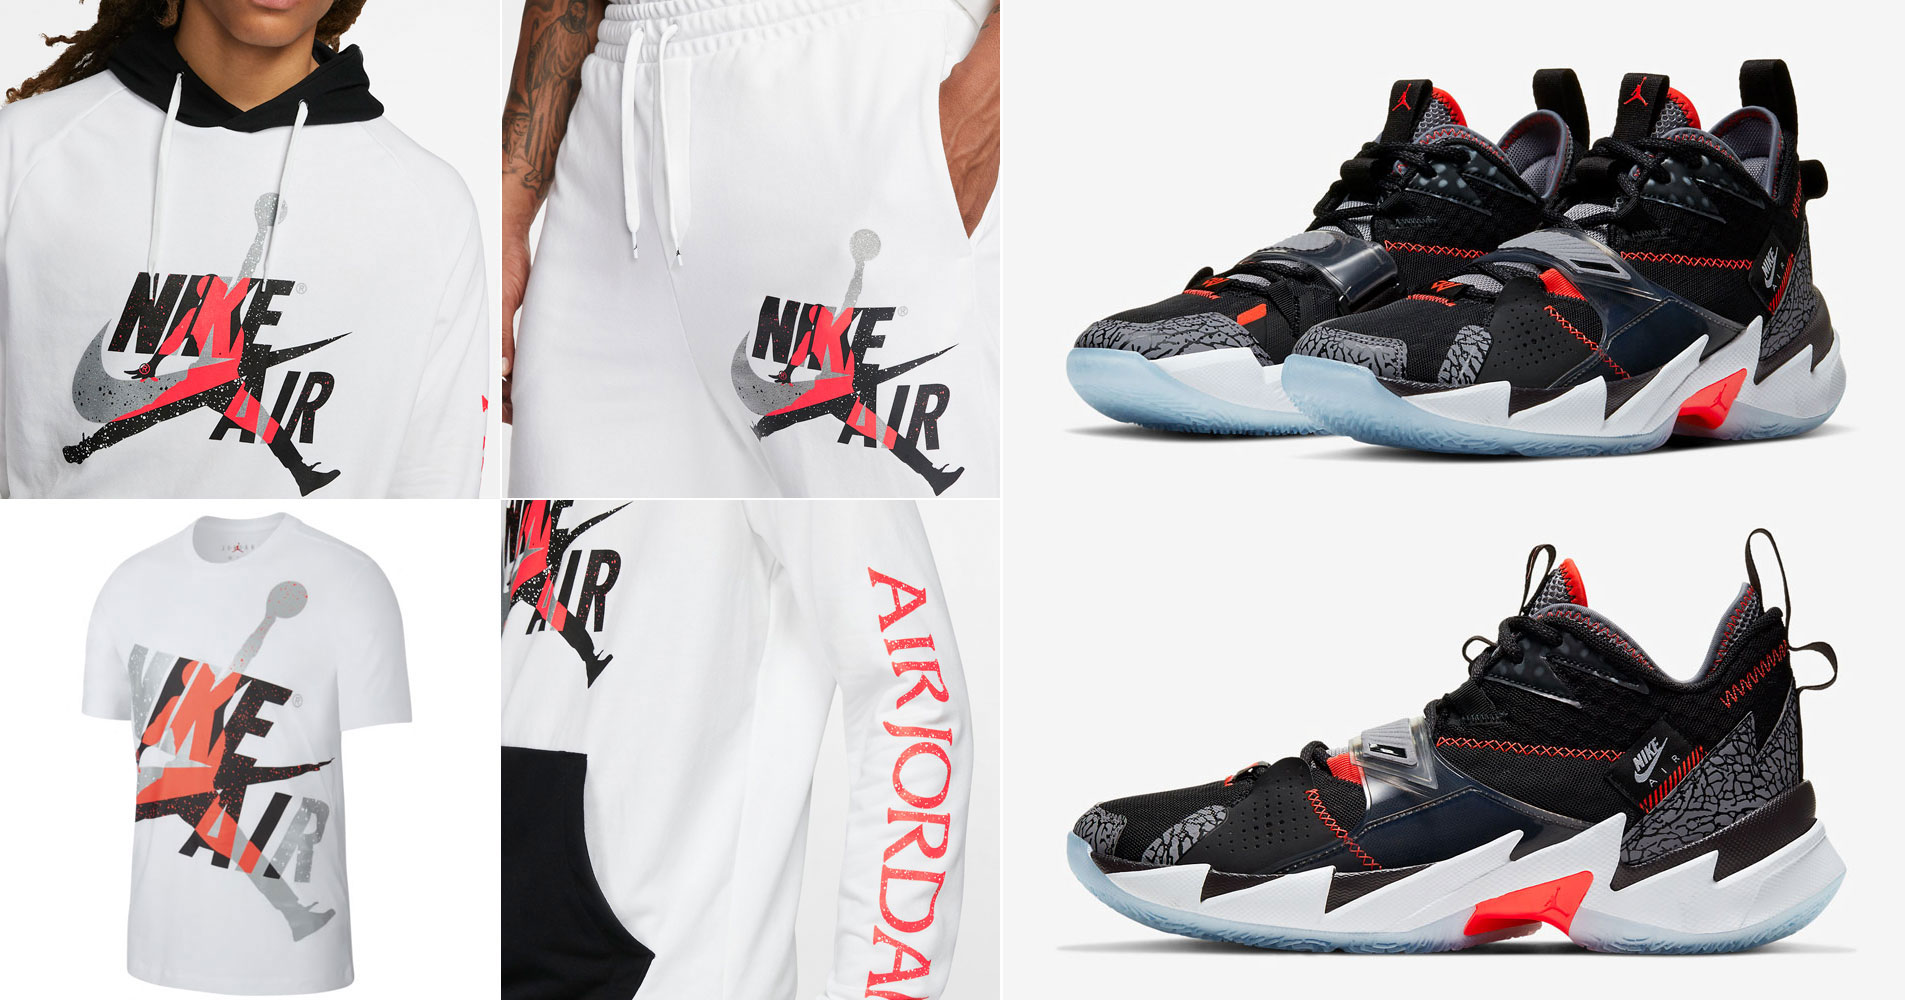 jordan-why-not-zer03-black-cement-clothing-match